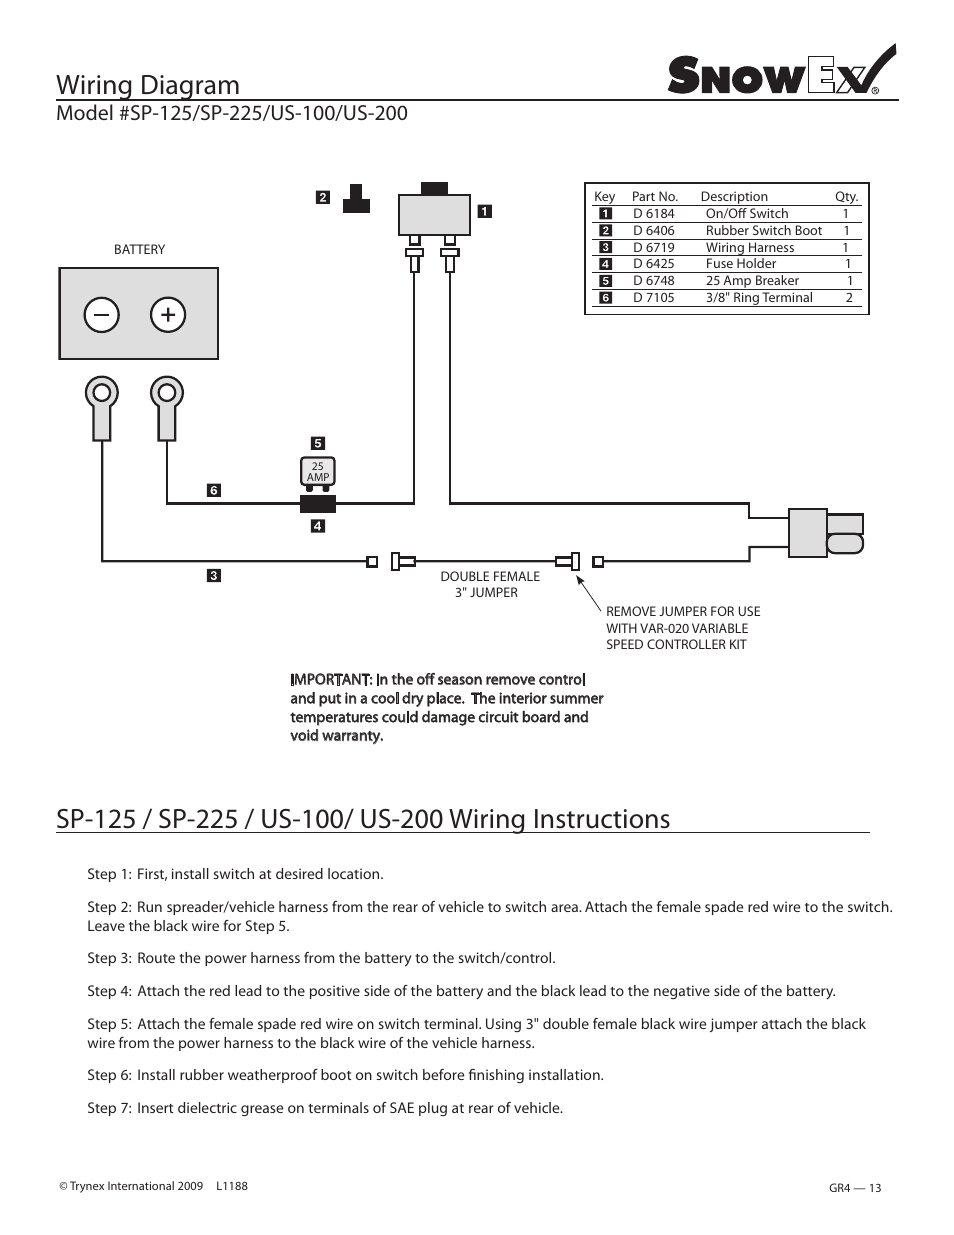 Snowex Wiring Diagram Worksheet And Salt Spreader Wire For Sp 225 Us 200 User Manual Page 13 27 Rh Manualsdir Com